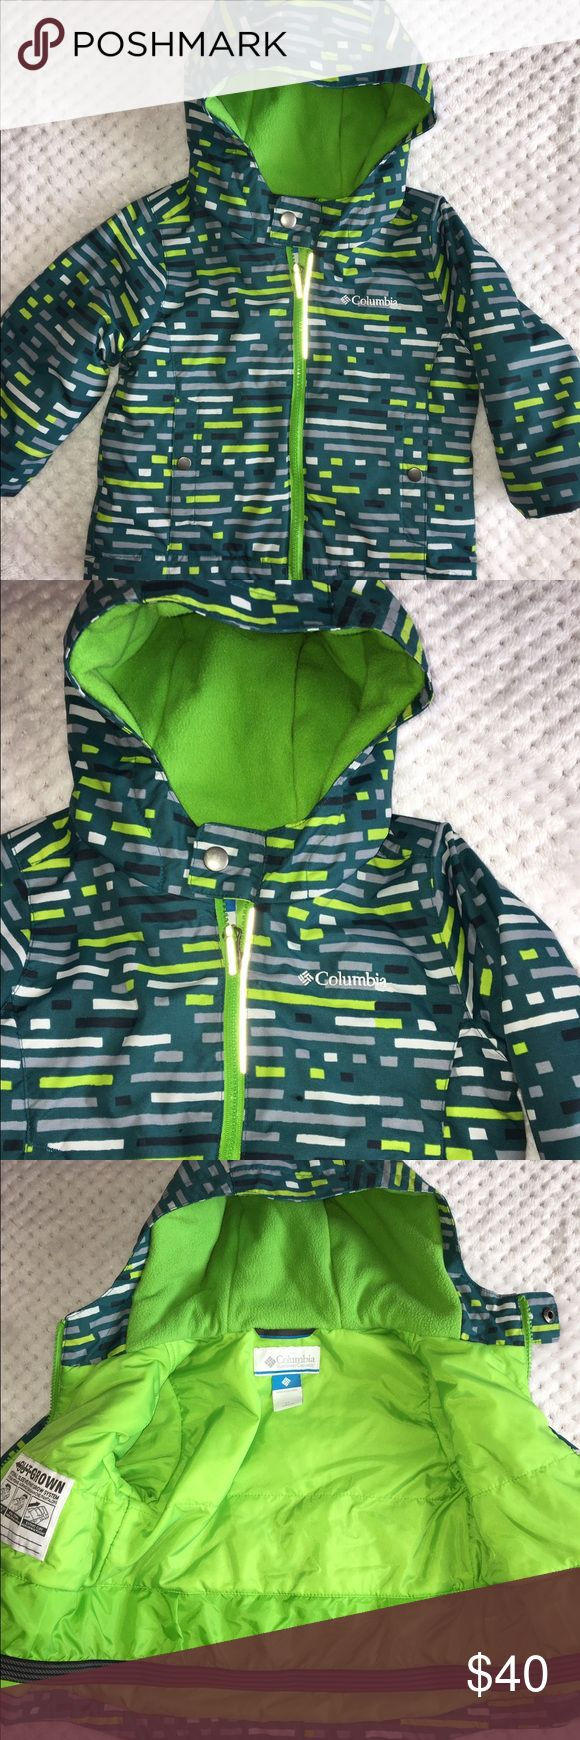 2T Columbia Coat So sad we already outgrew this. In excellent condition!! Columbia Jackets & Coats